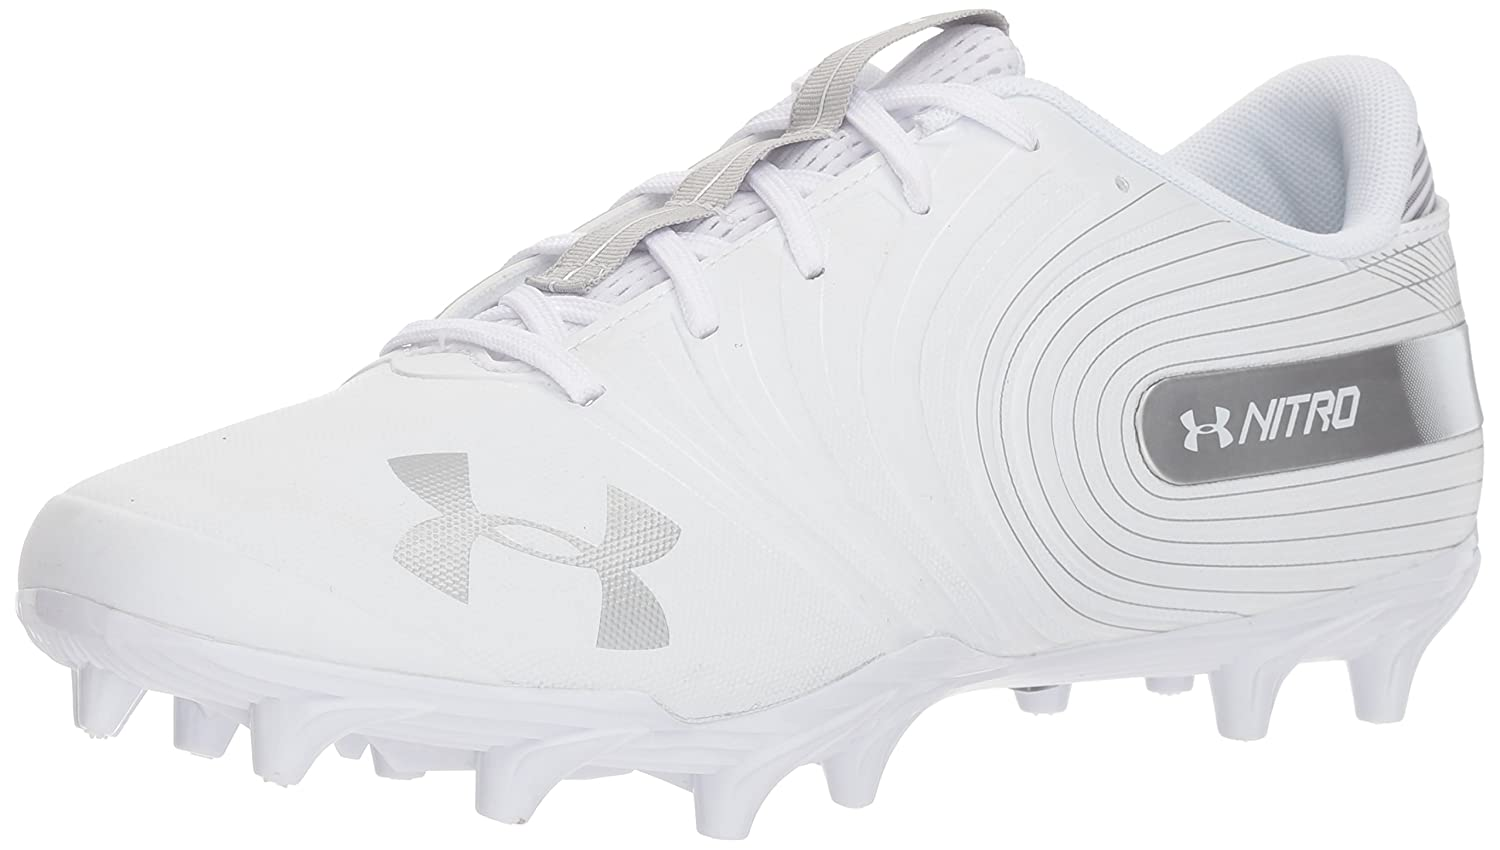 Under Armour メンズ 3000182 B072FJJG4V 11 D(M) US|White (100)/Metallic Silver White (100)/Metallic Silver 11 D(M) US